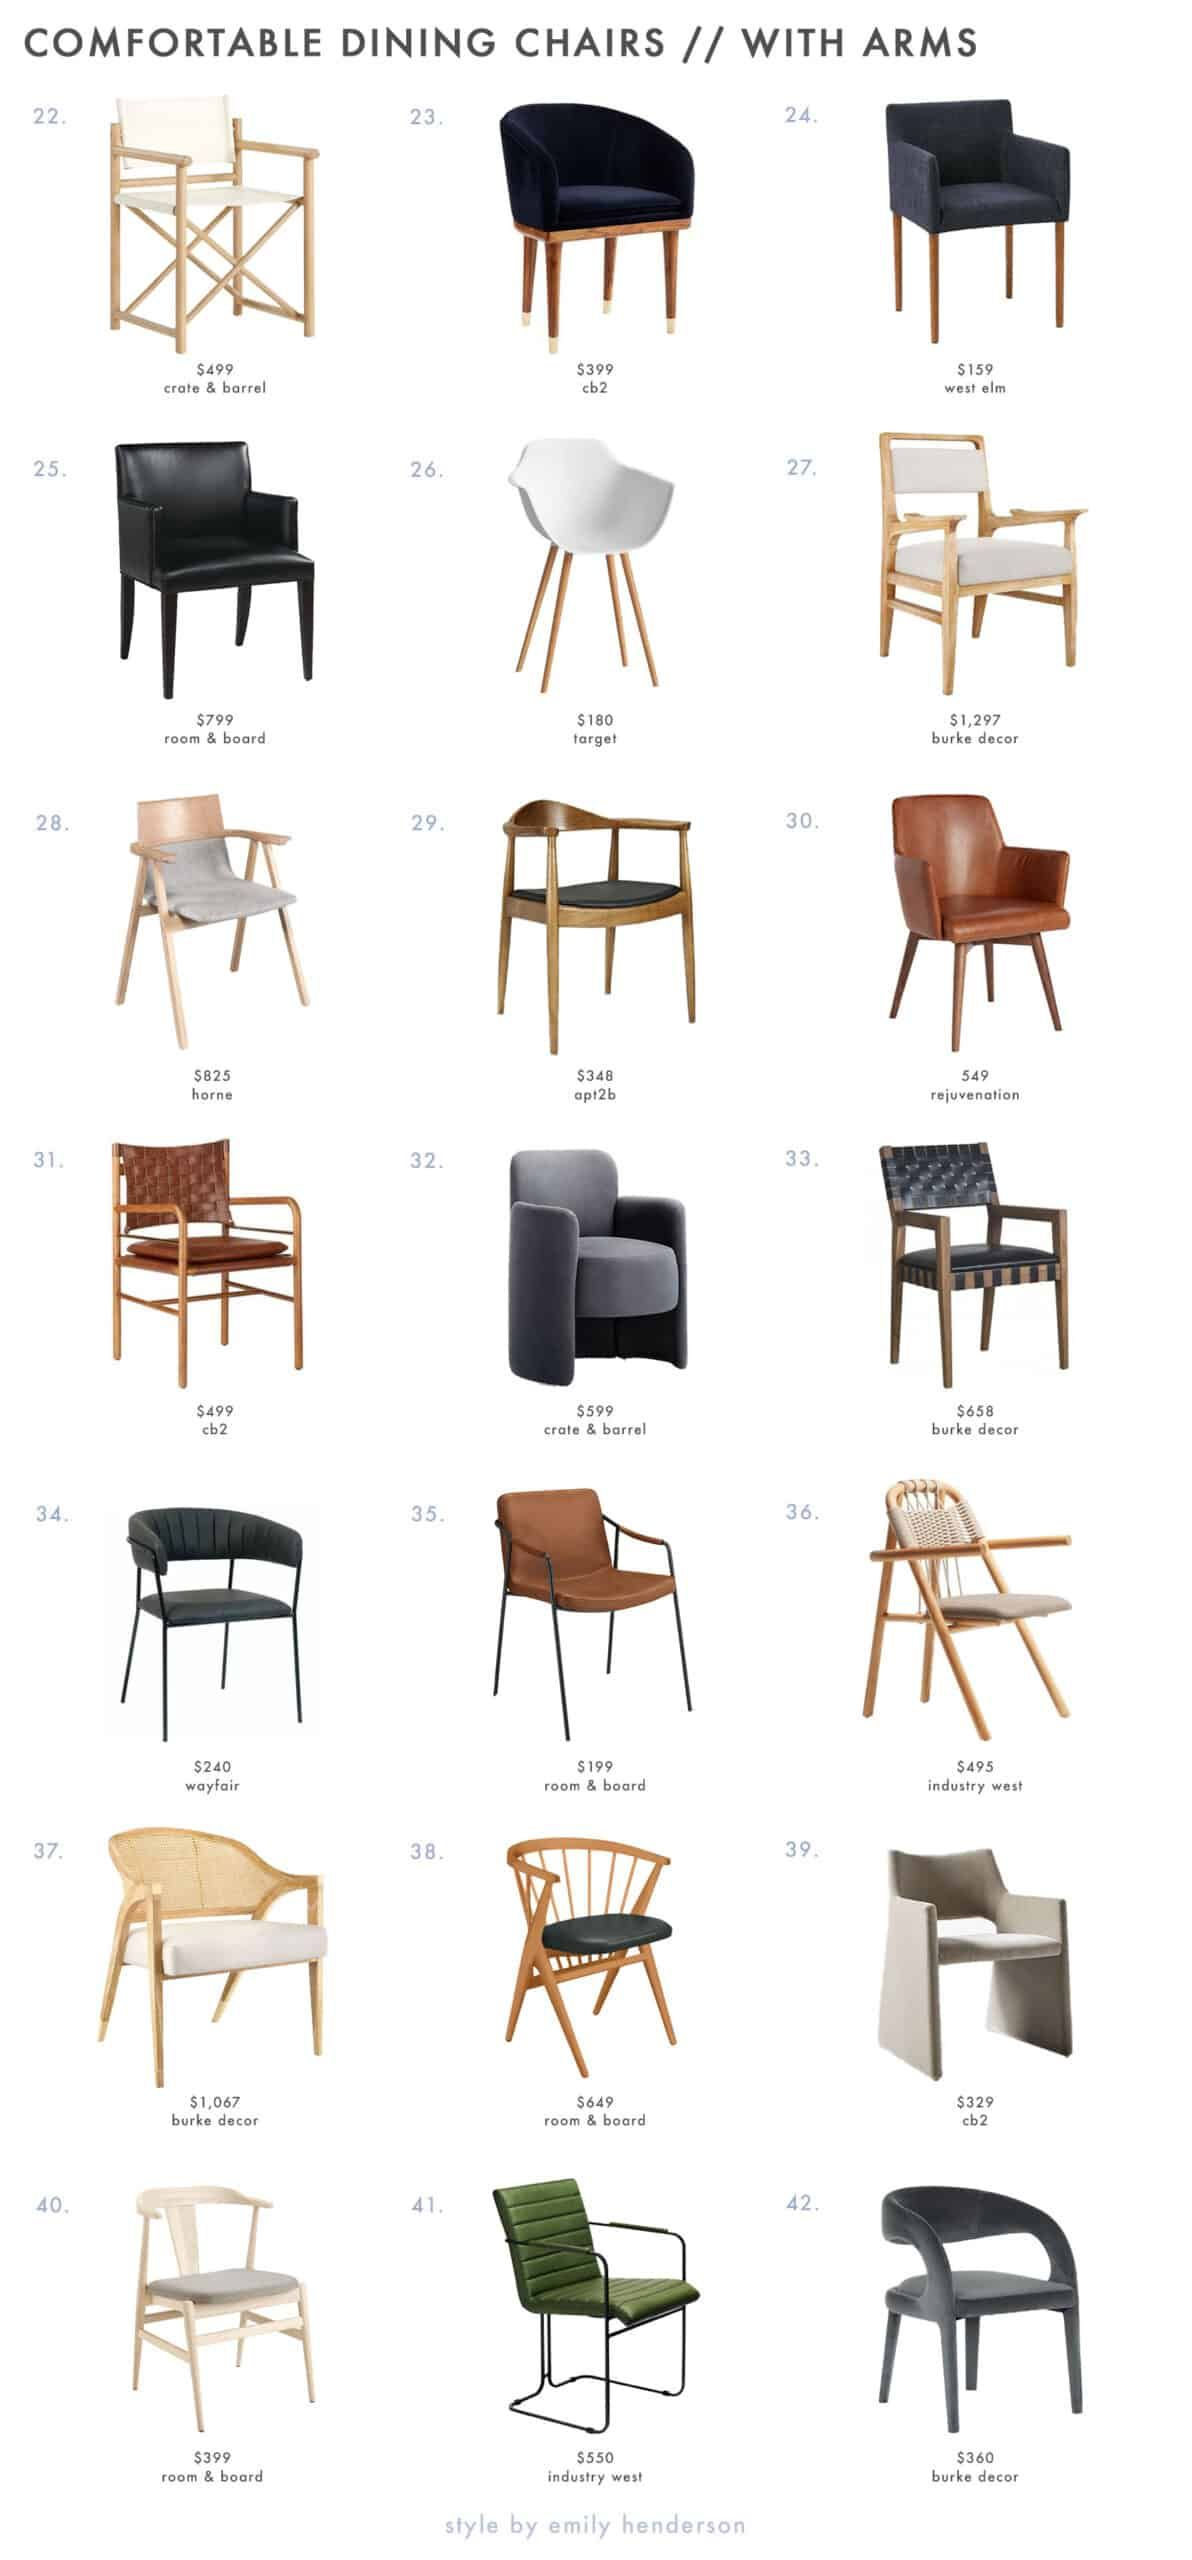 93 Dining Chairs That Meet All Your Comfort Needs Rules For Picking Them Out Emily Henderson Comfortable Dining Chairs Leather Dining Room Chairs Dining Chairs Comfortable dining chairs with arms